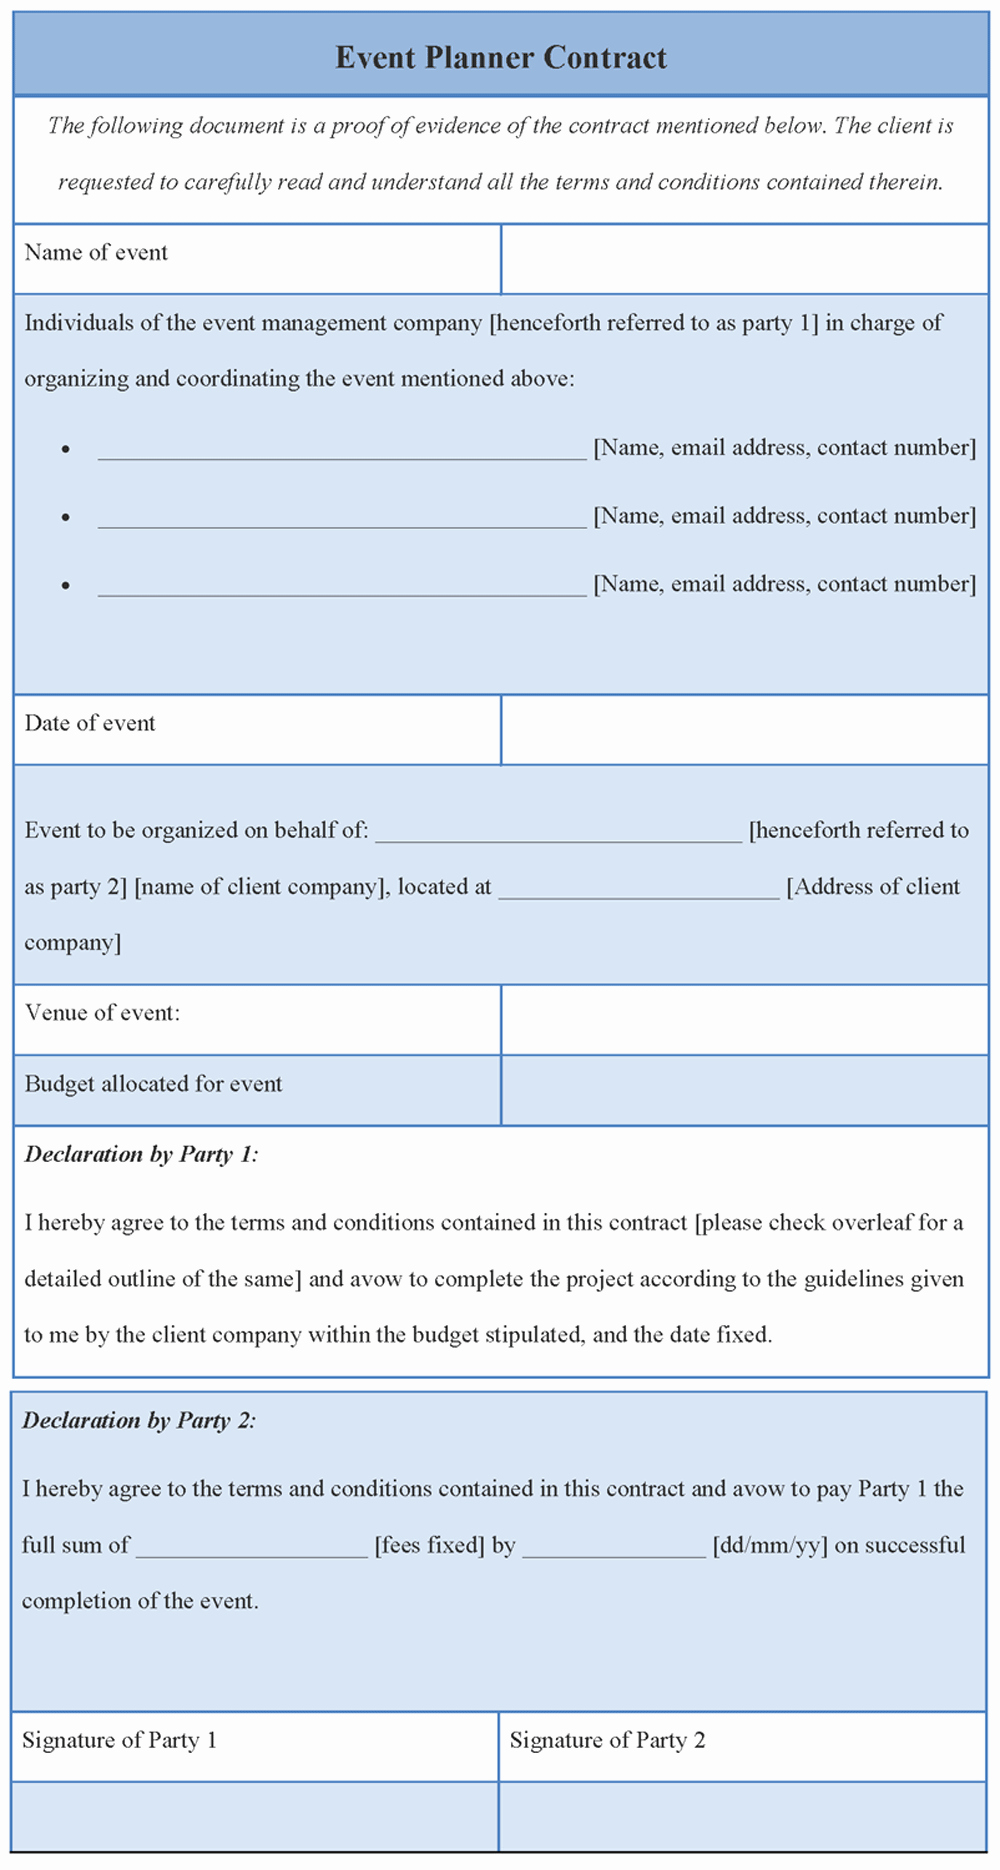 Event Planning Contract Template Free Lovely Contract Template for event Planner format Of event